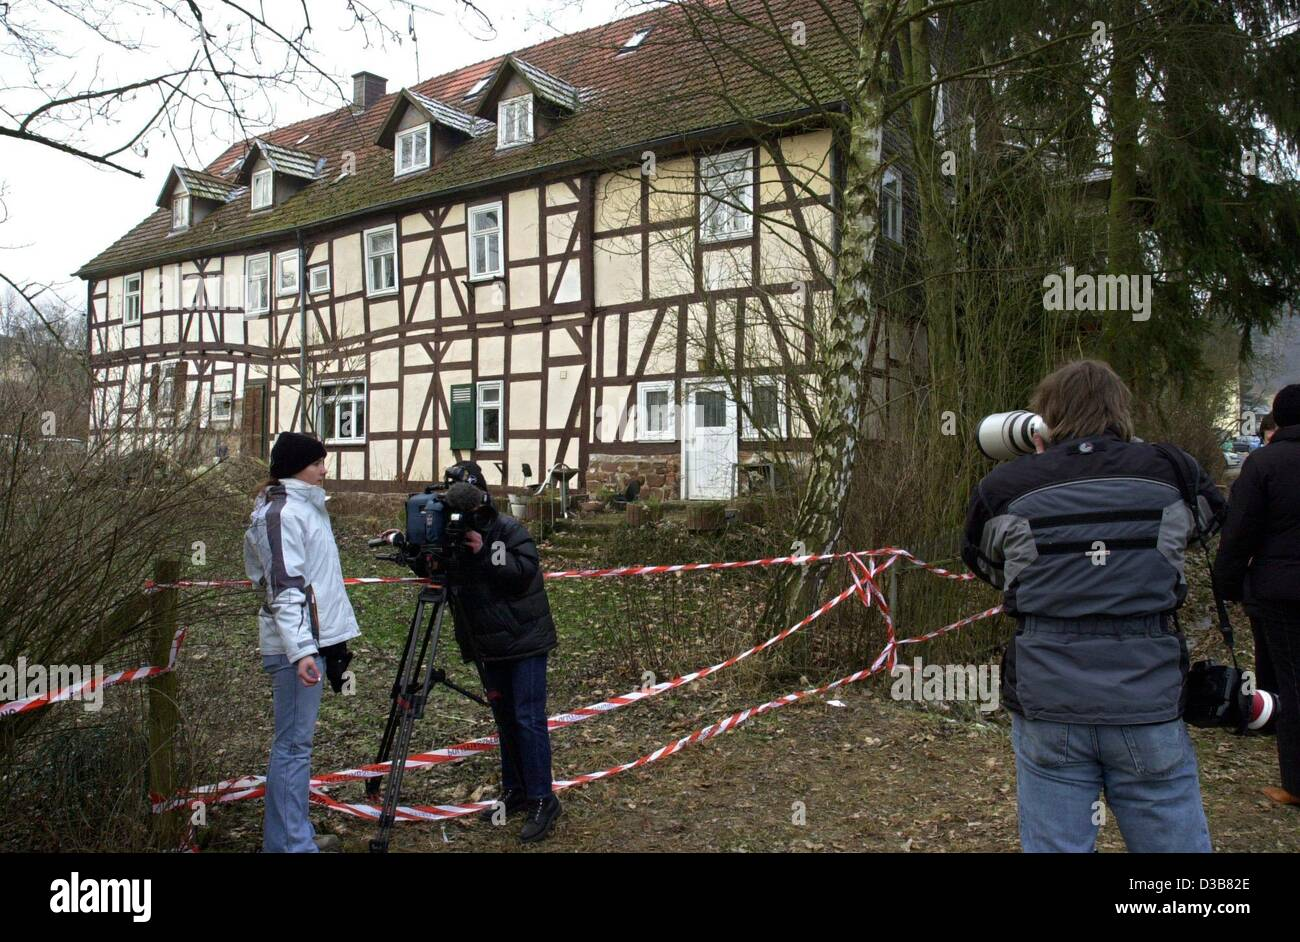 (dpa) - Journalists take pictures of the house of Armin M. in Rotenburg, Germany, 13 December 2002. The 41-year - Stock Image